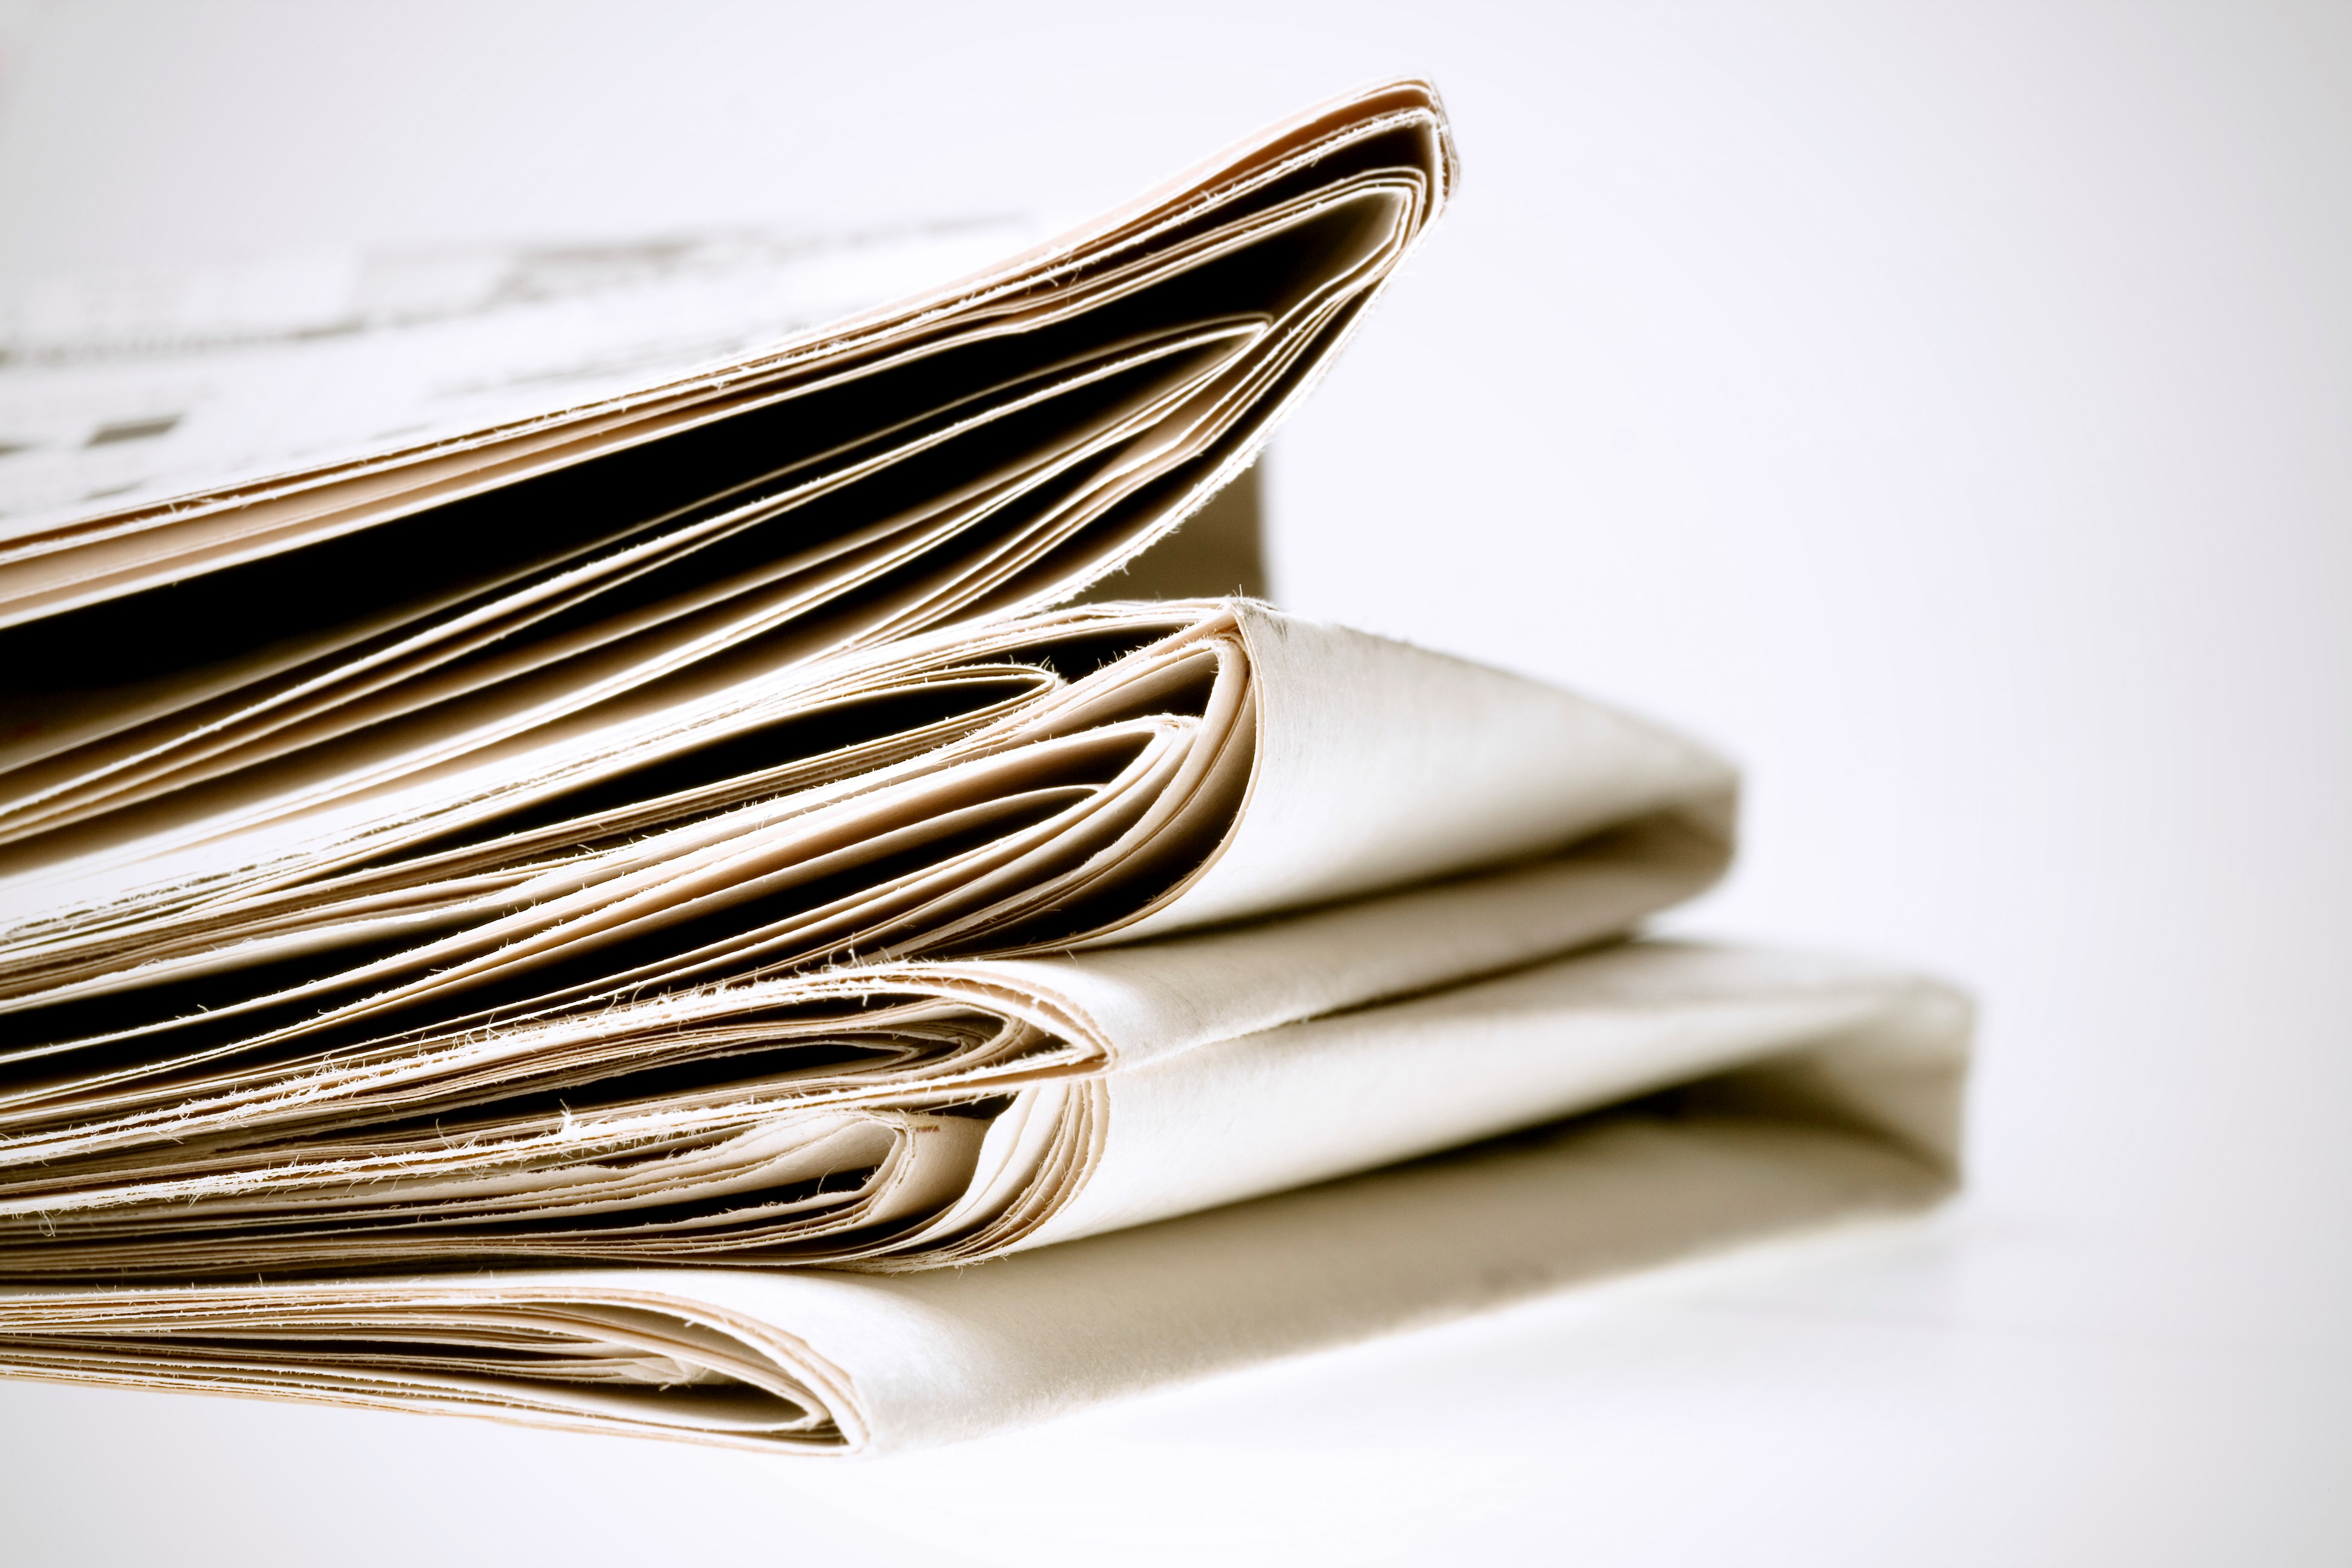 Image of a pile of newspapers (free image)